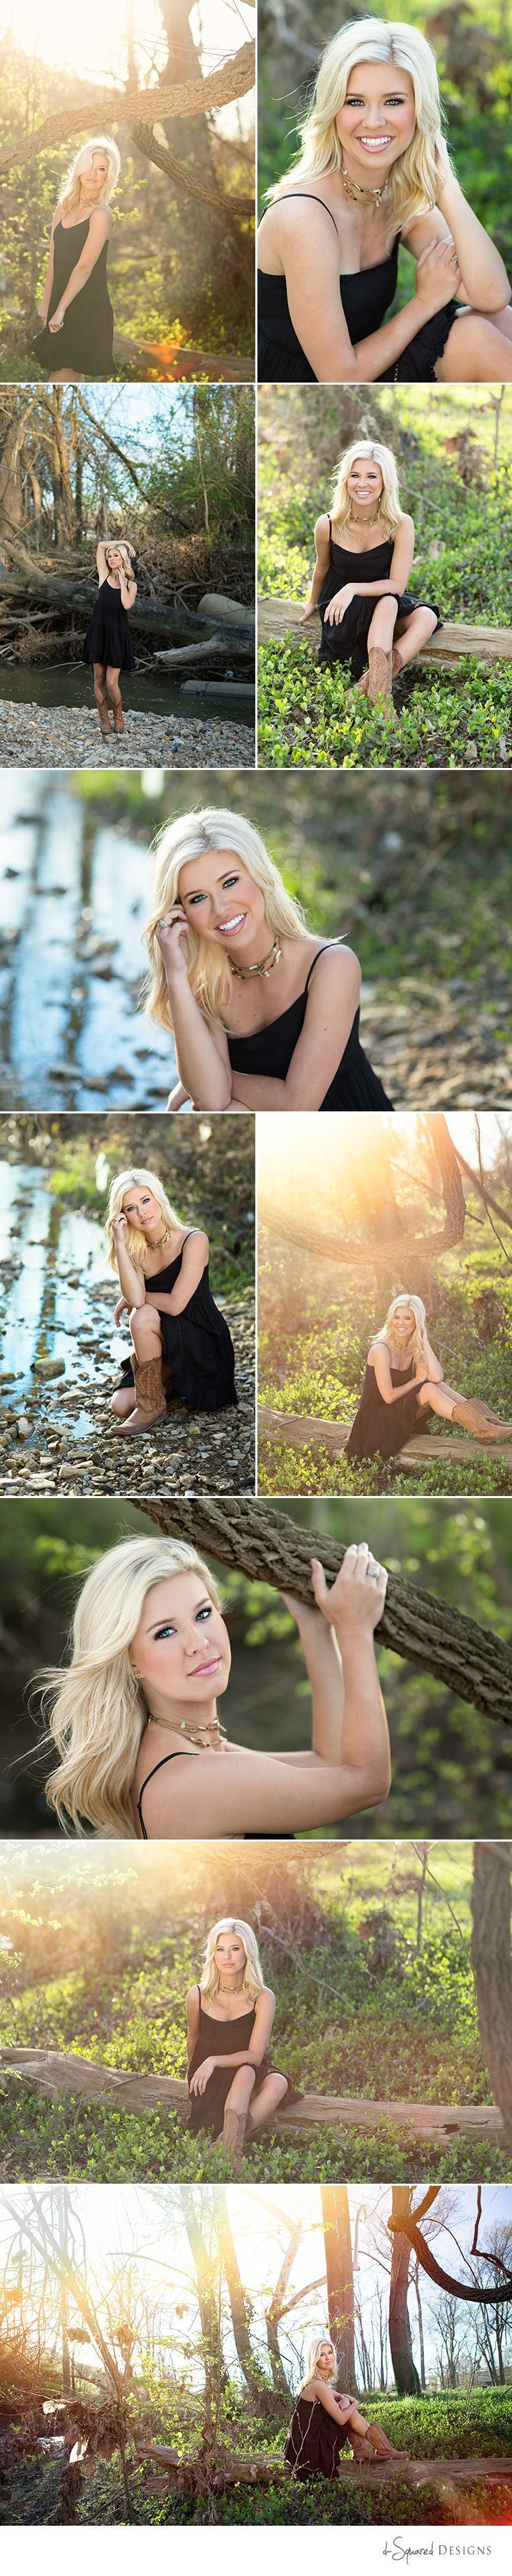 Spring Senior Session. Beautiful senior. Senior girl photography. Spring location by creek. d-Squared Designs St. Louis, MO Senior Photography #seniorphotography,